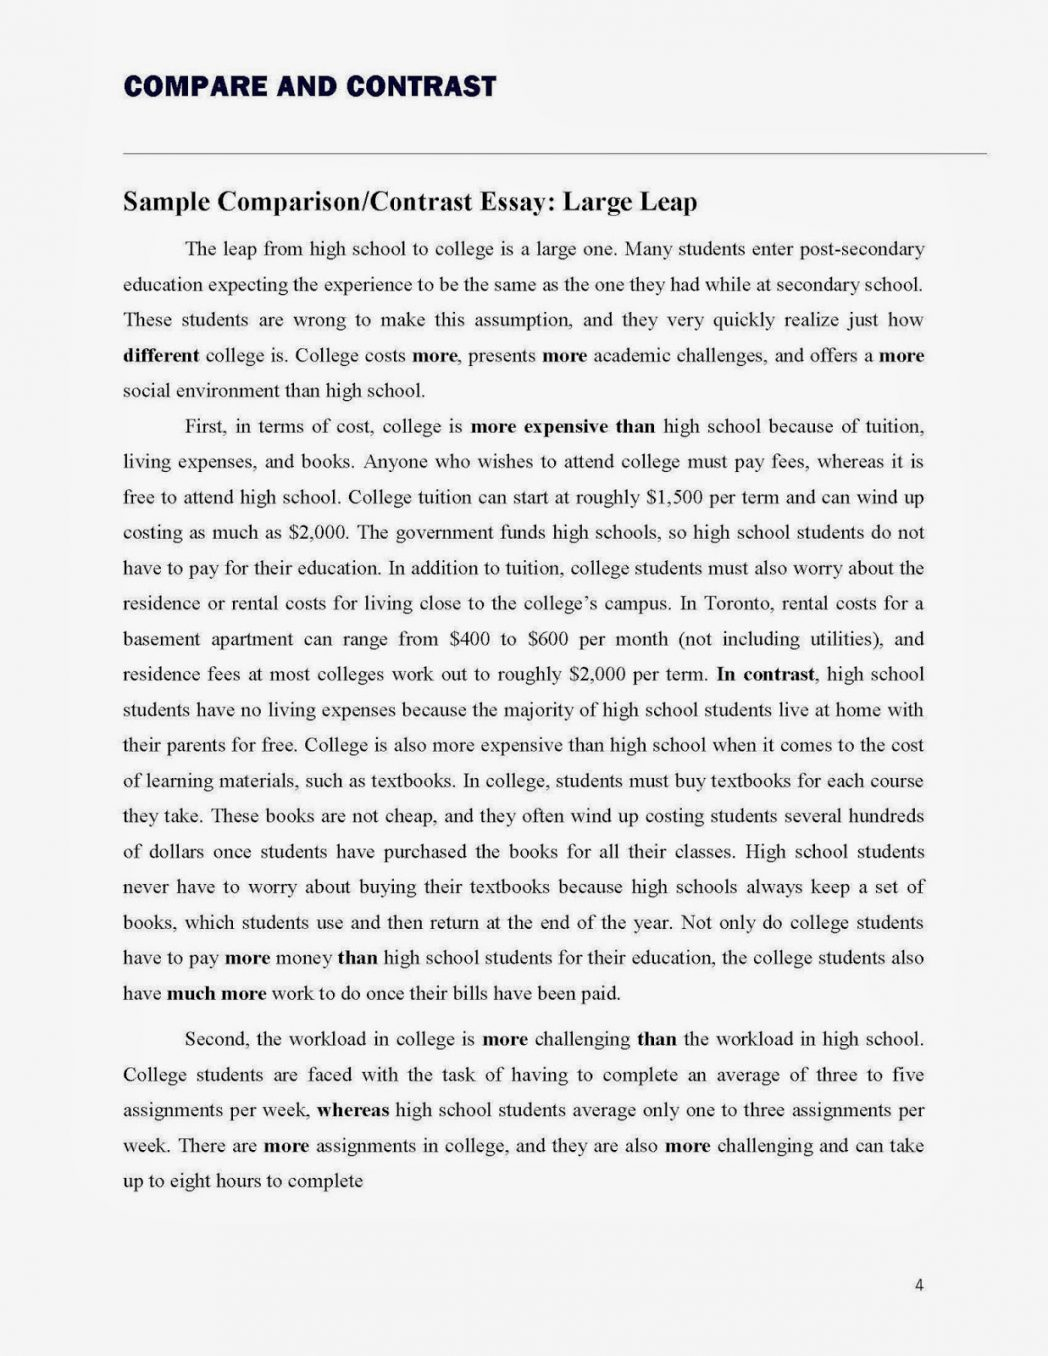 008 Synthesis Essay Prompt Example Compare Contrast Prompts How To Write Ou Do You Good Thesis Introduction For Ap English I Conclusion Outline Lang Fearsome 2017 Locavore Examples Full